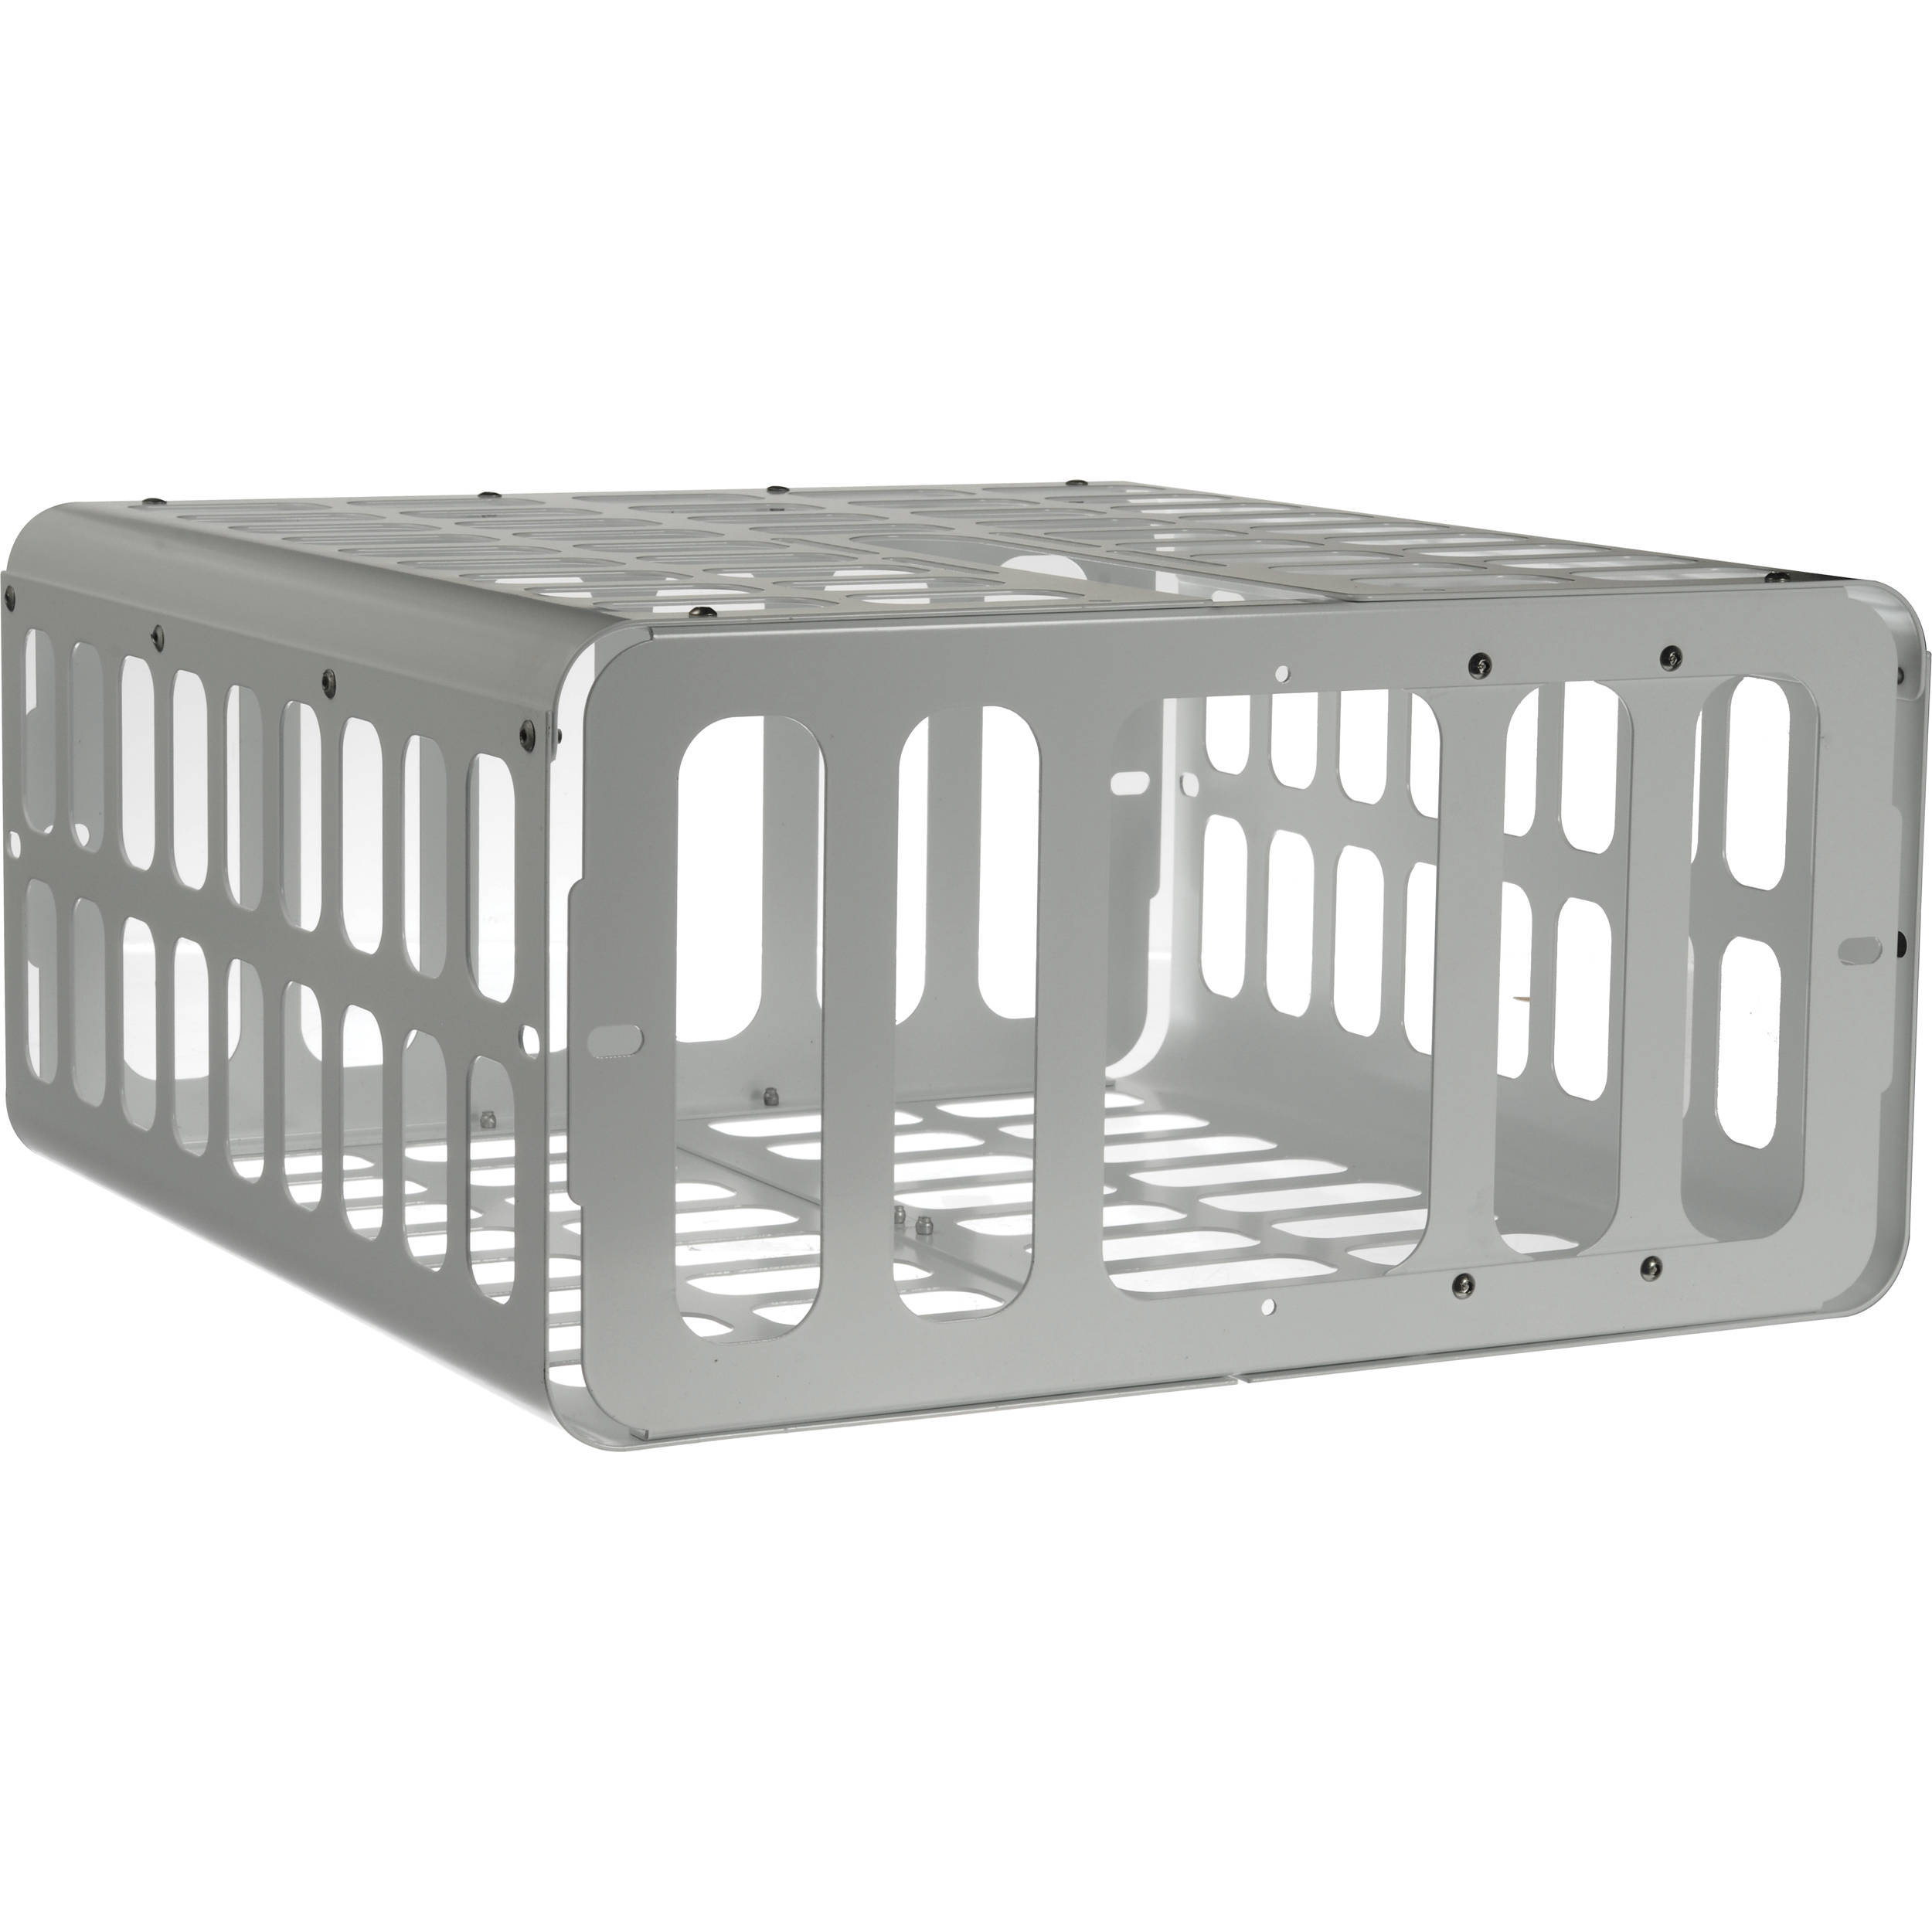 Chief Pg1aw Large Projector Guard Security Cage White Pg1aw